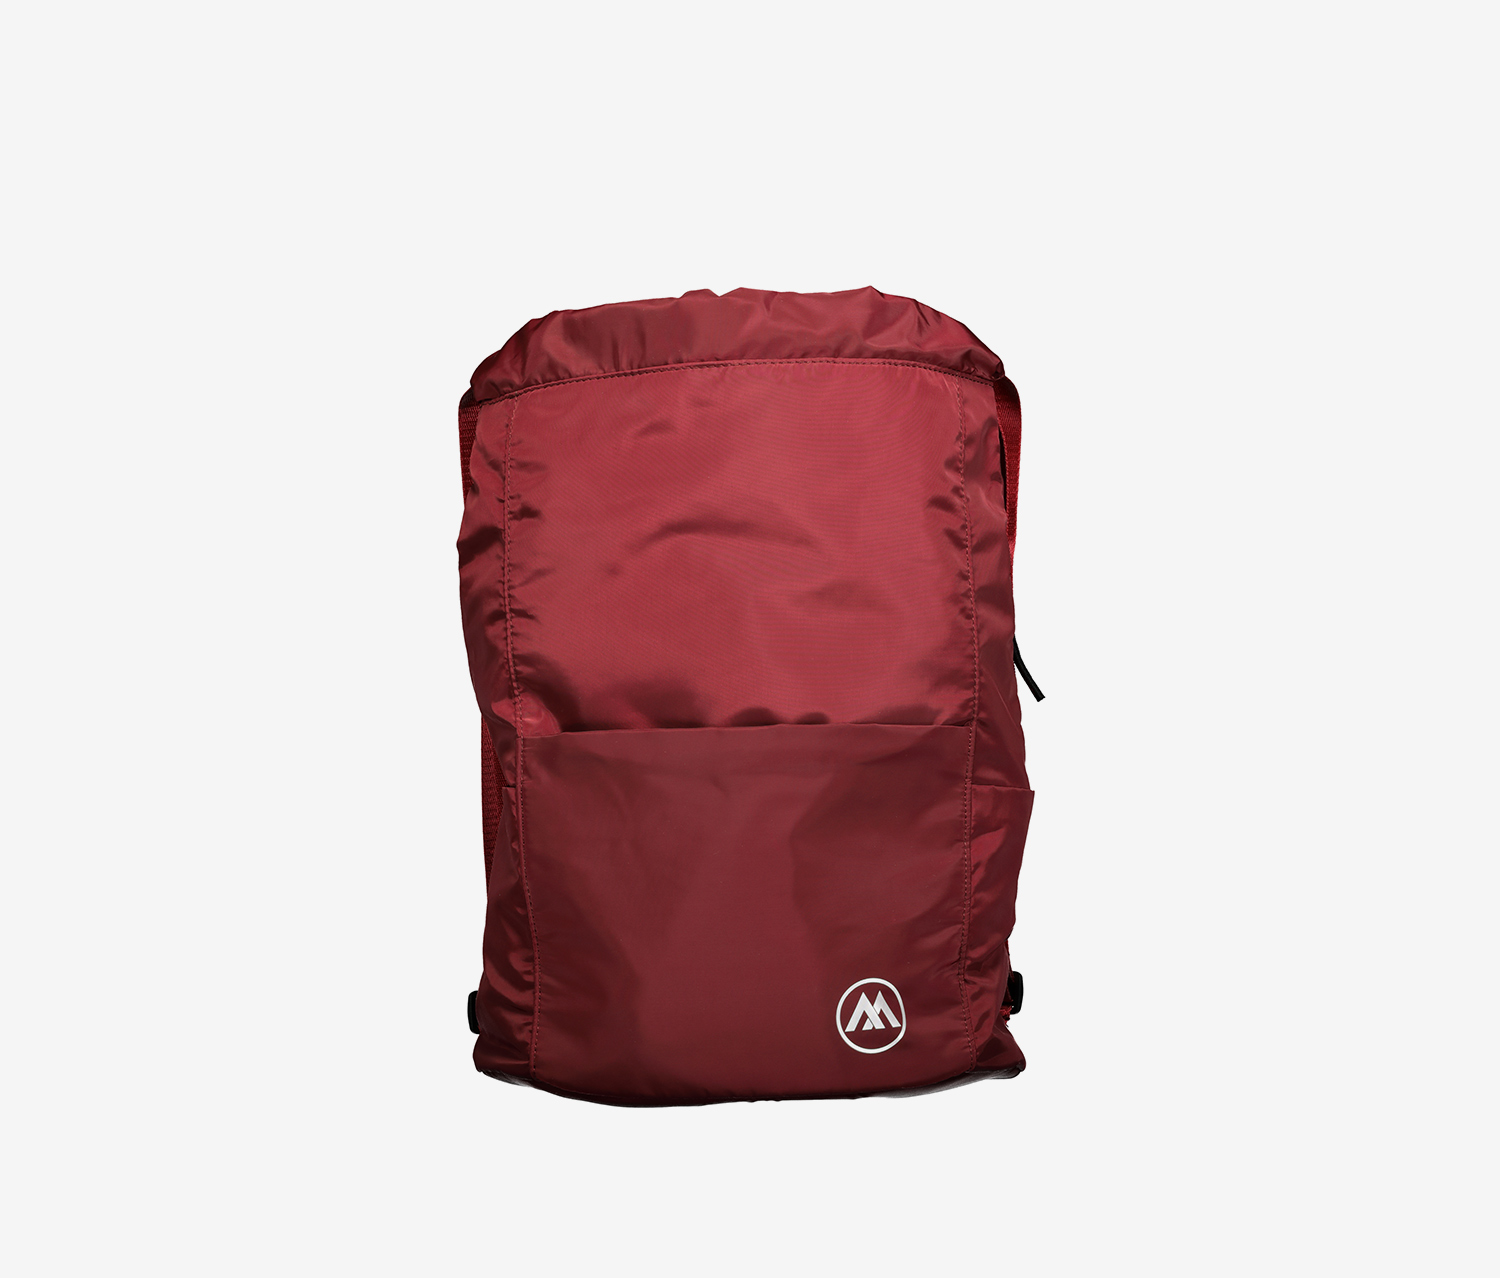 Drawstring Backpack, Maroon